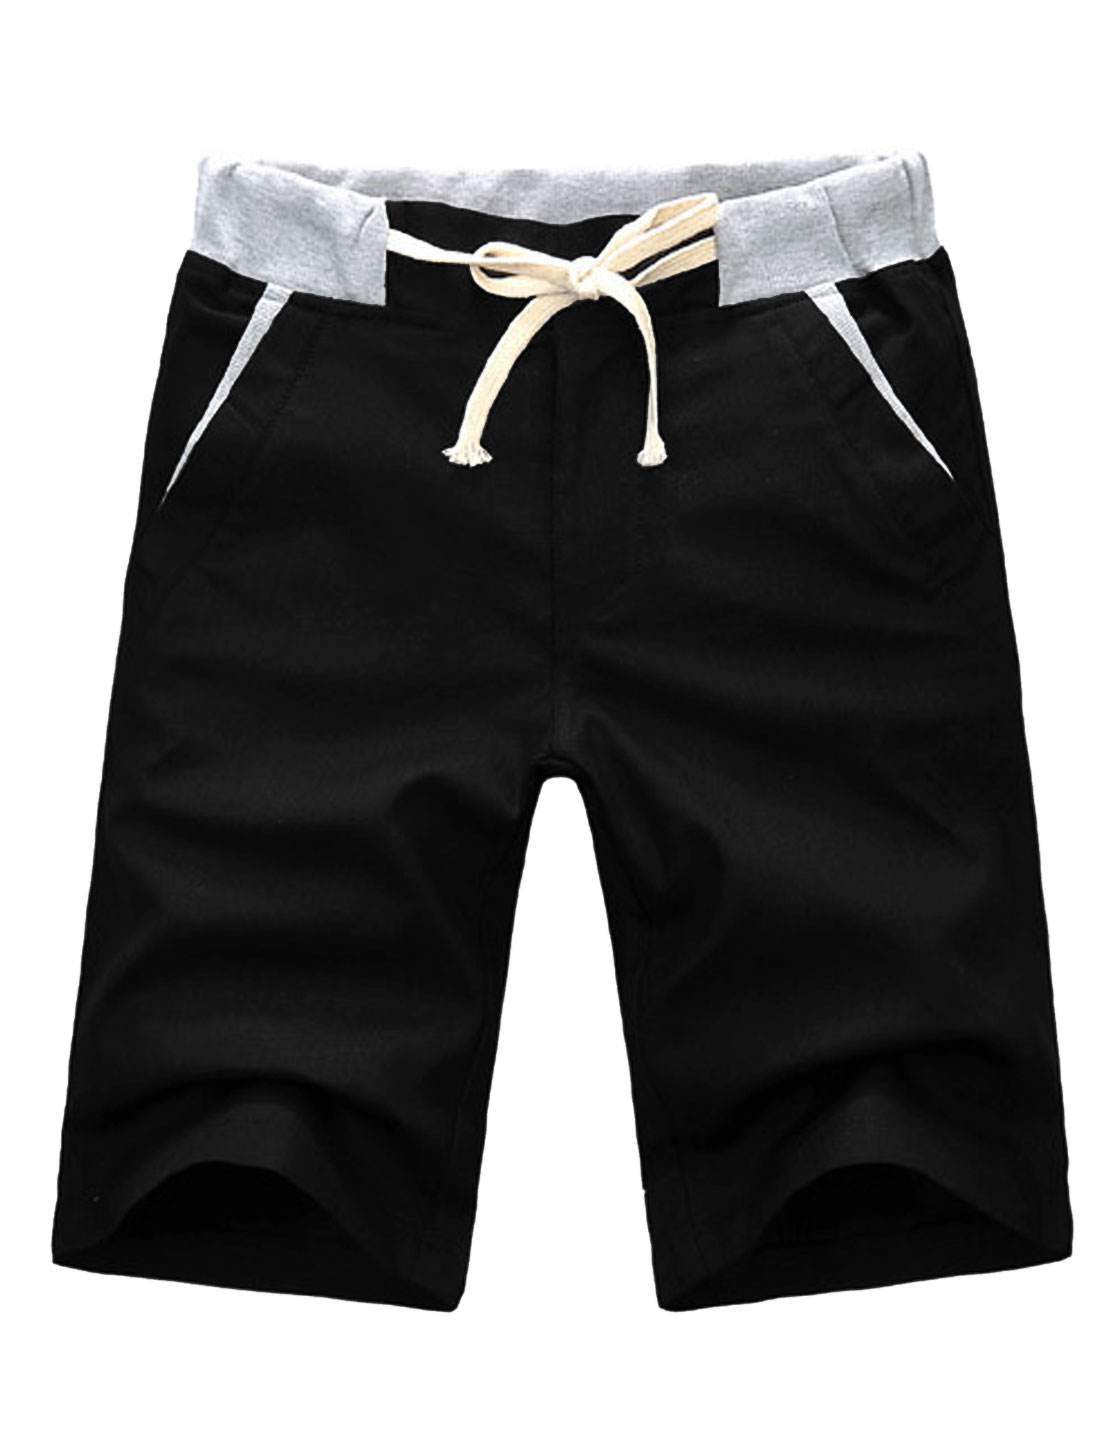 Men Mid Rise Button Closed Drawstring Waist Casual Shorts Black W28